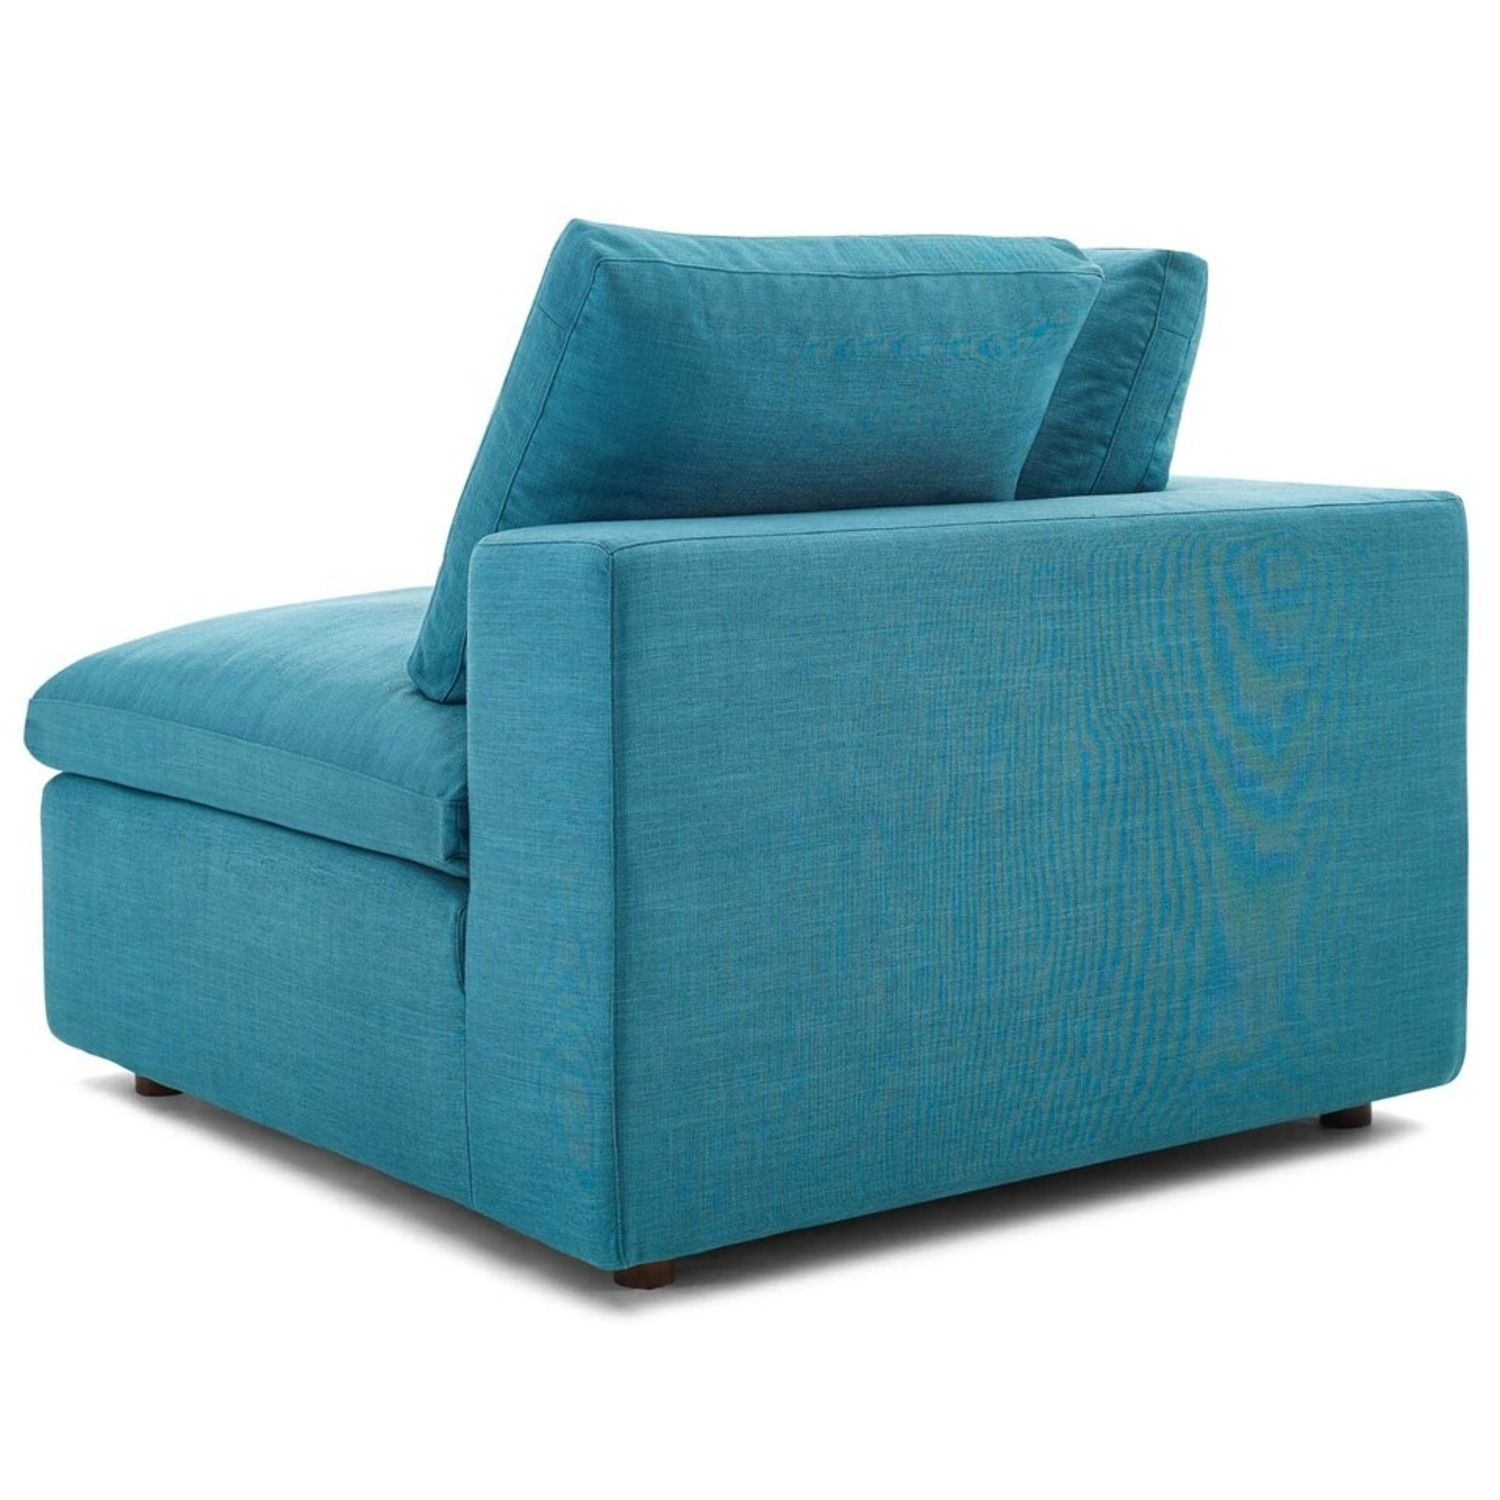 6-Piece Sectional Sofa In Teal Linen Fabric - image-5